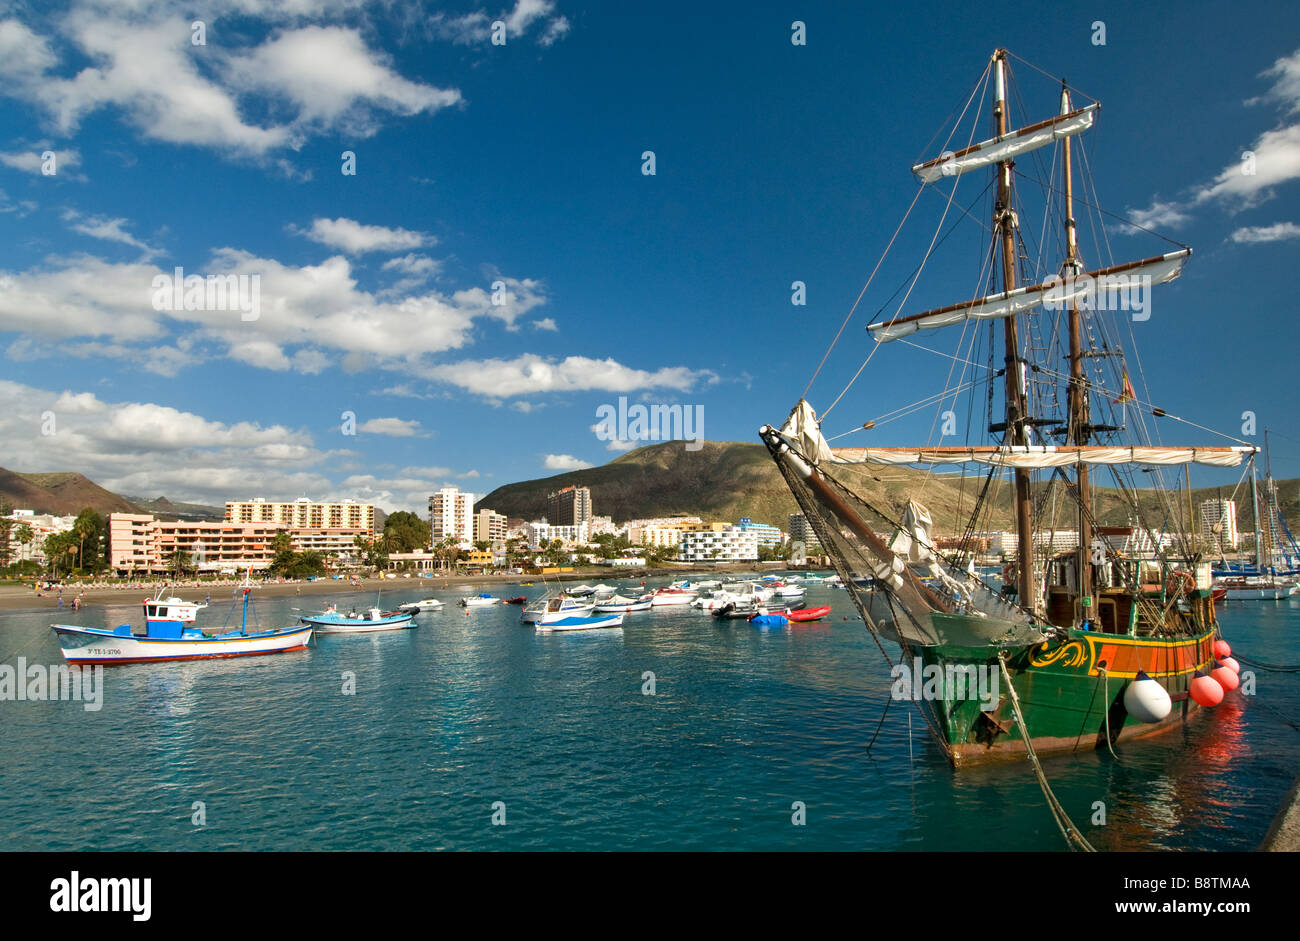 The 'Jolly Roger' pirate themed tour boat in Los Cristianos harbour Tenerife Canary Islands Spain - Stock Image